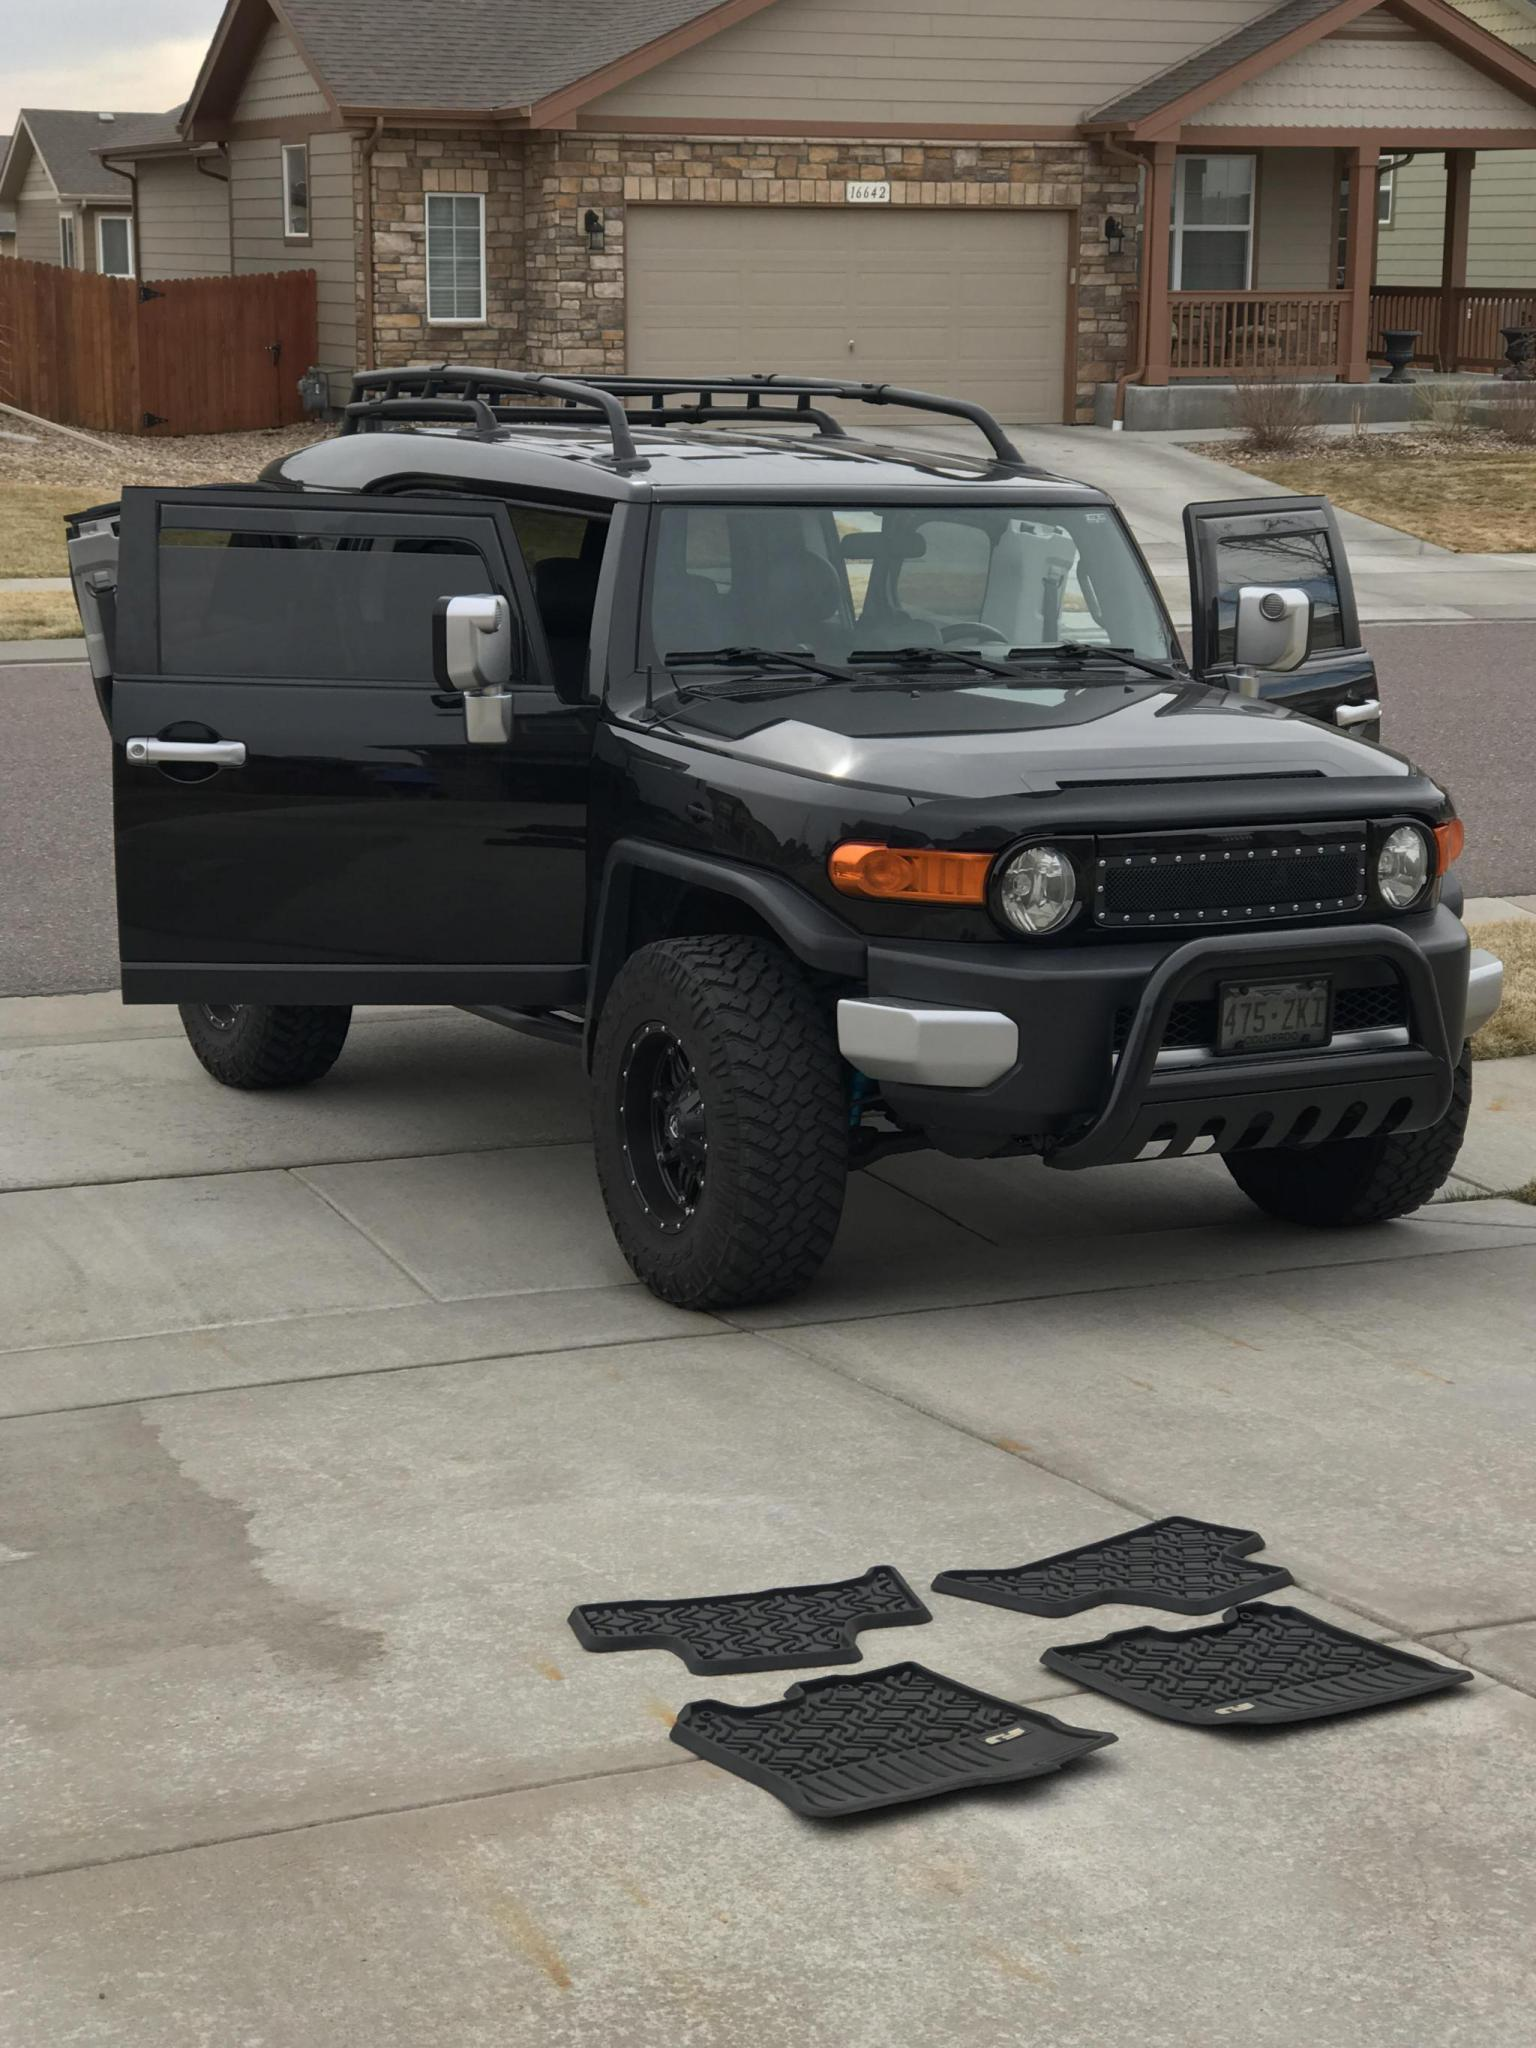 2008 toyota fj cruiser at toyota fj cruiser forum. Black Bedroom Furniture Sets. Home Design Ideas